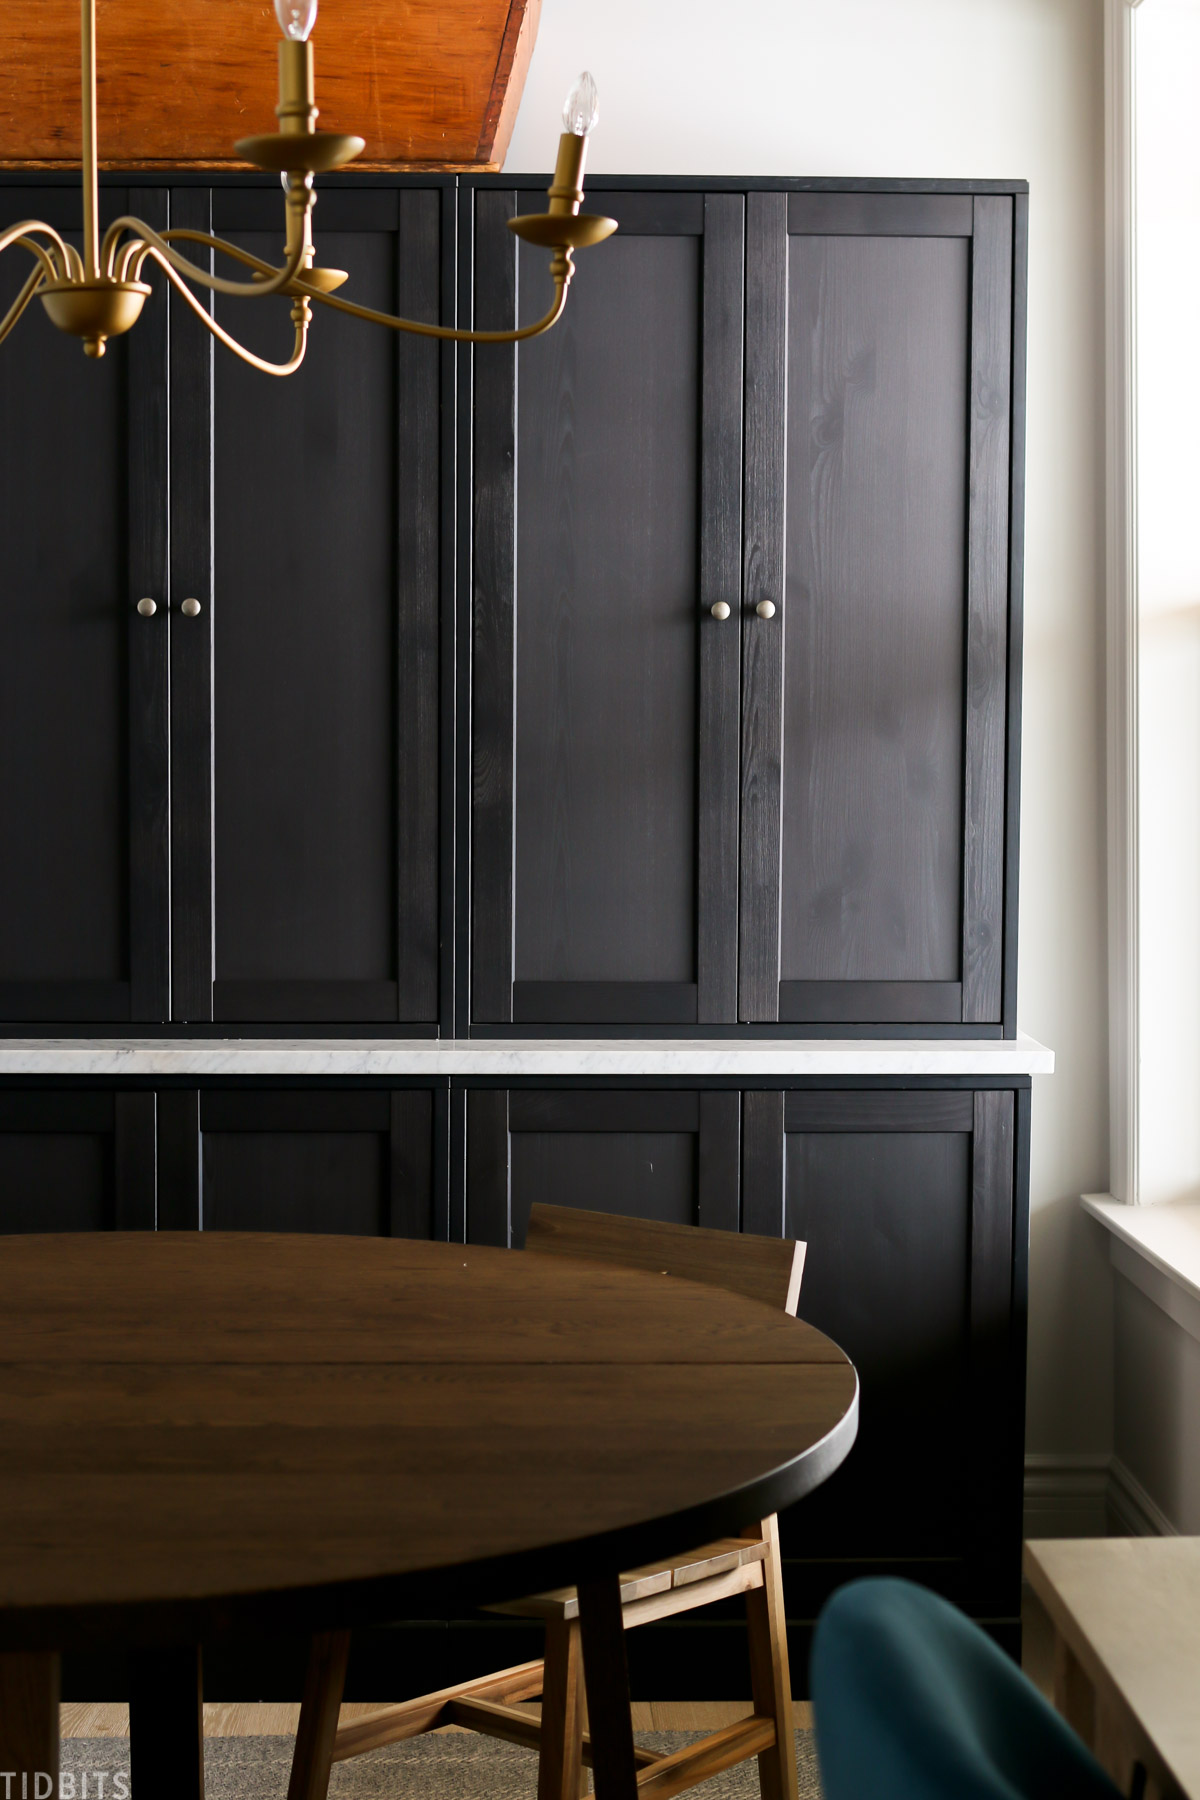 round table and chair in front of black Havsta cabinets